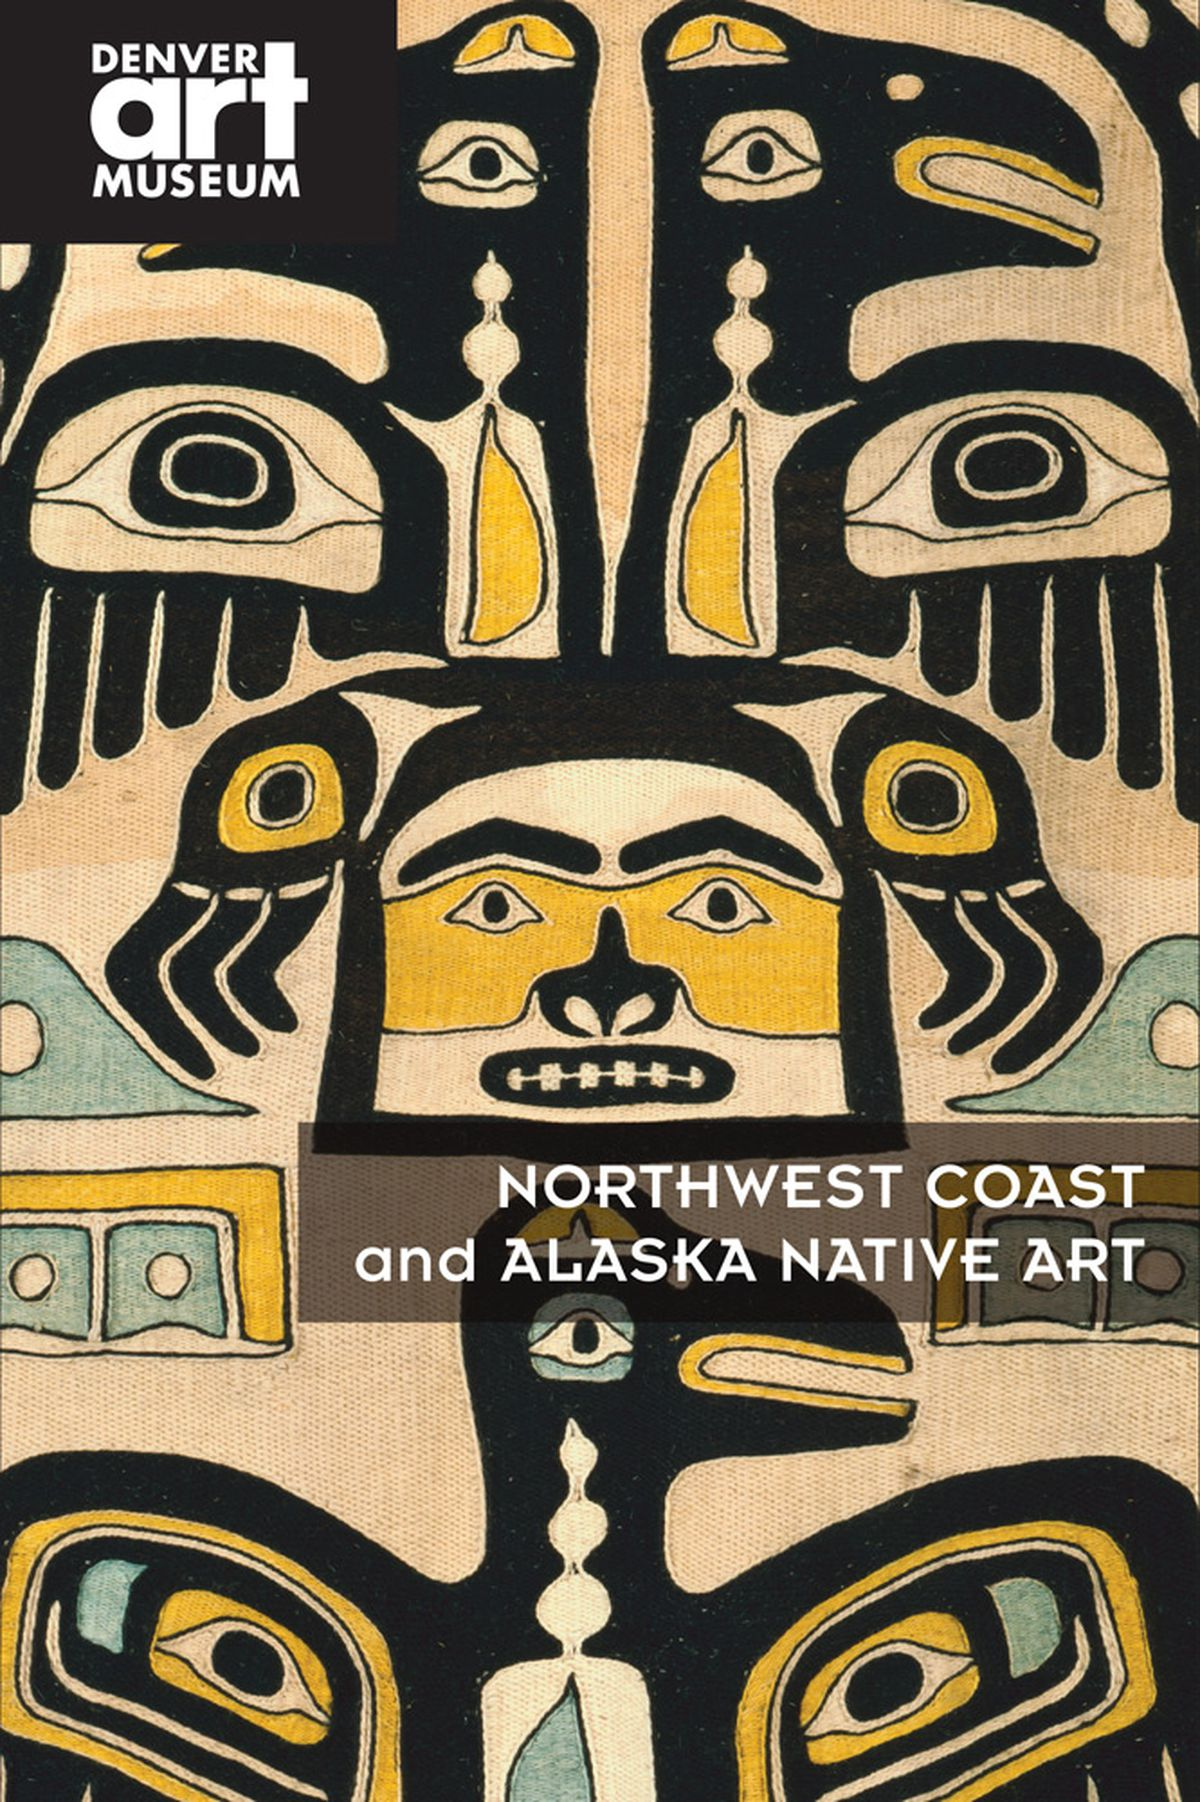 Stories of cultural resilience in the art of Northwest coastal and Alaska Native people seen in new book